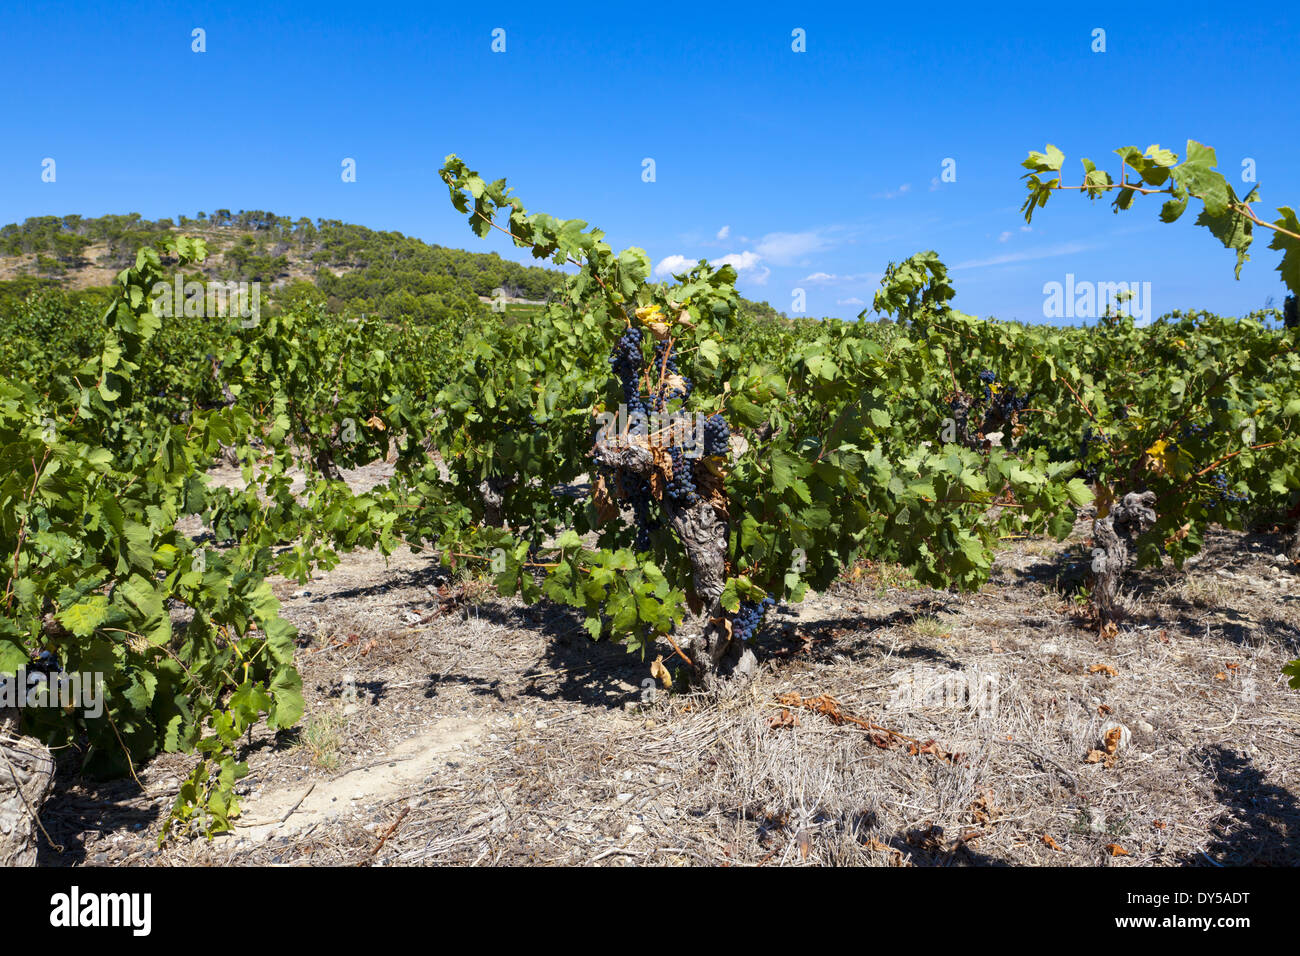 Vineyards at Gruissan in the region Languedoc-Roussillon in southern France Stock Photo